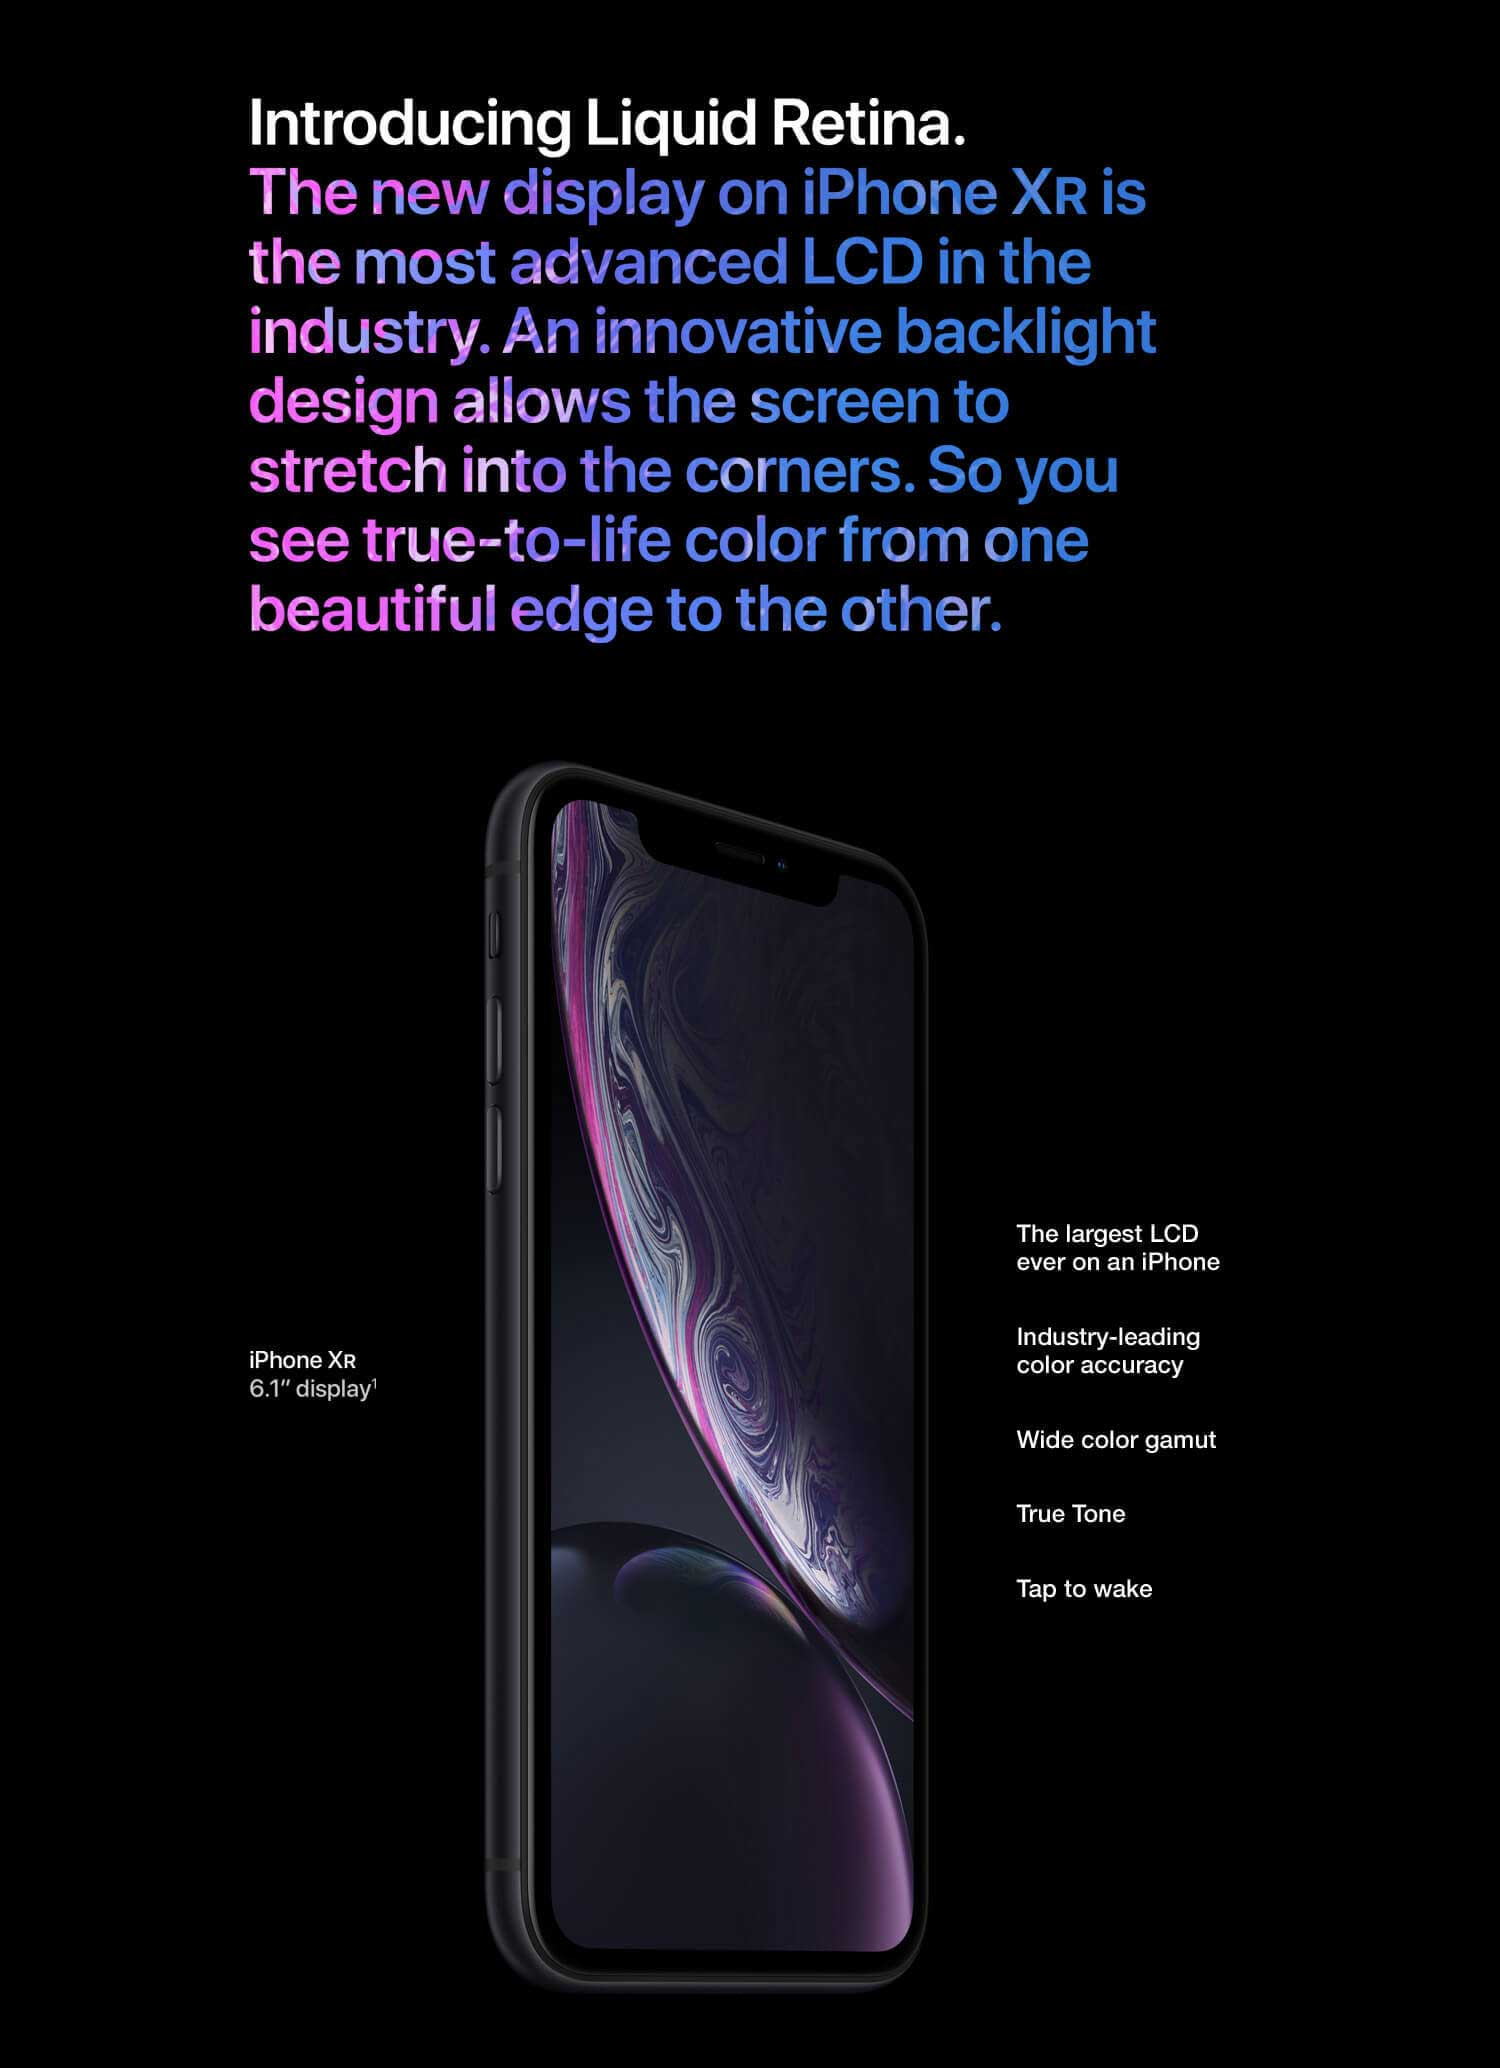 iPhone XR screen display